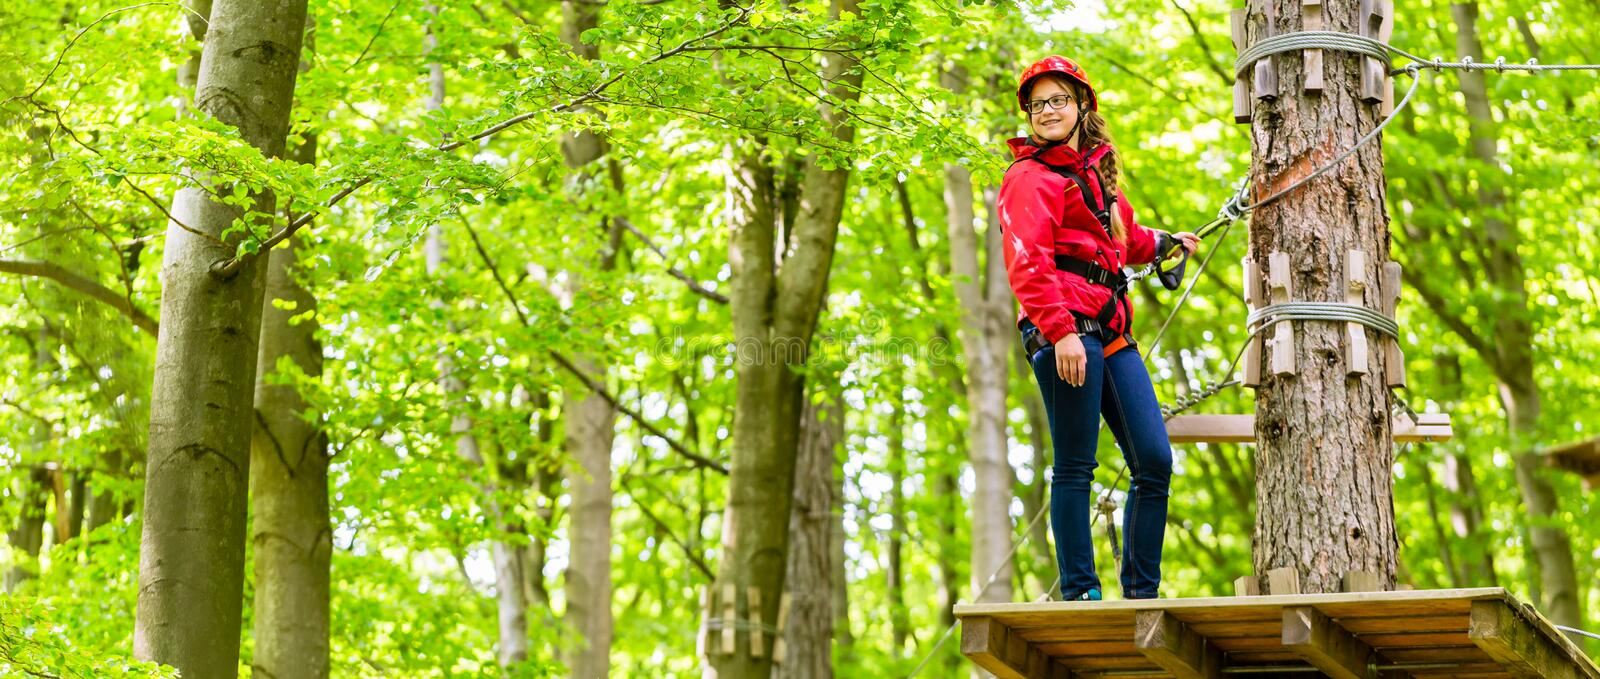 Teenager girl climbing in high rope course or parl stock photography